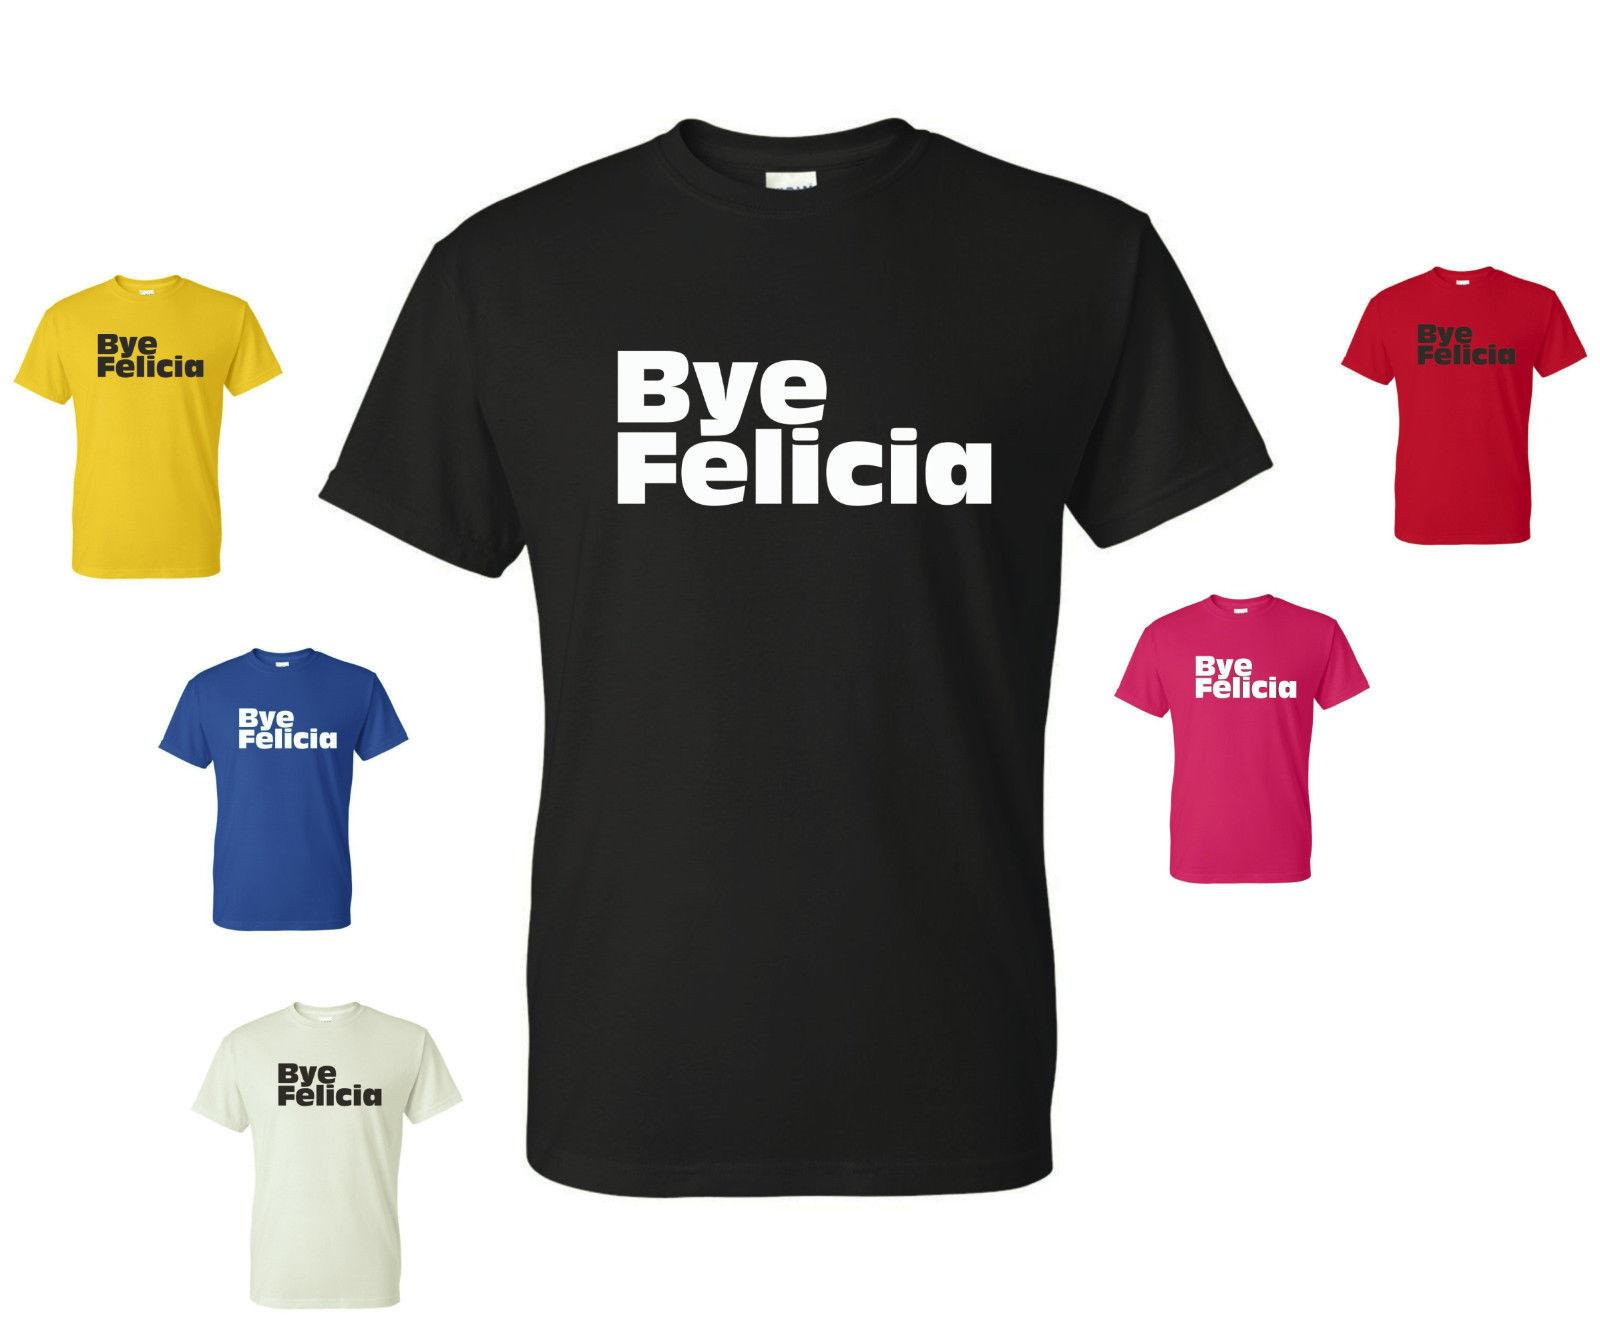 503ec806 Bye Felicia Shirt Next Friday Tee Funny T Ice Cube Movie Quote Meme College  Funny Unisex Casual Funny Clever T Shirts Best Sites For T Shirts From  Britwear, ...